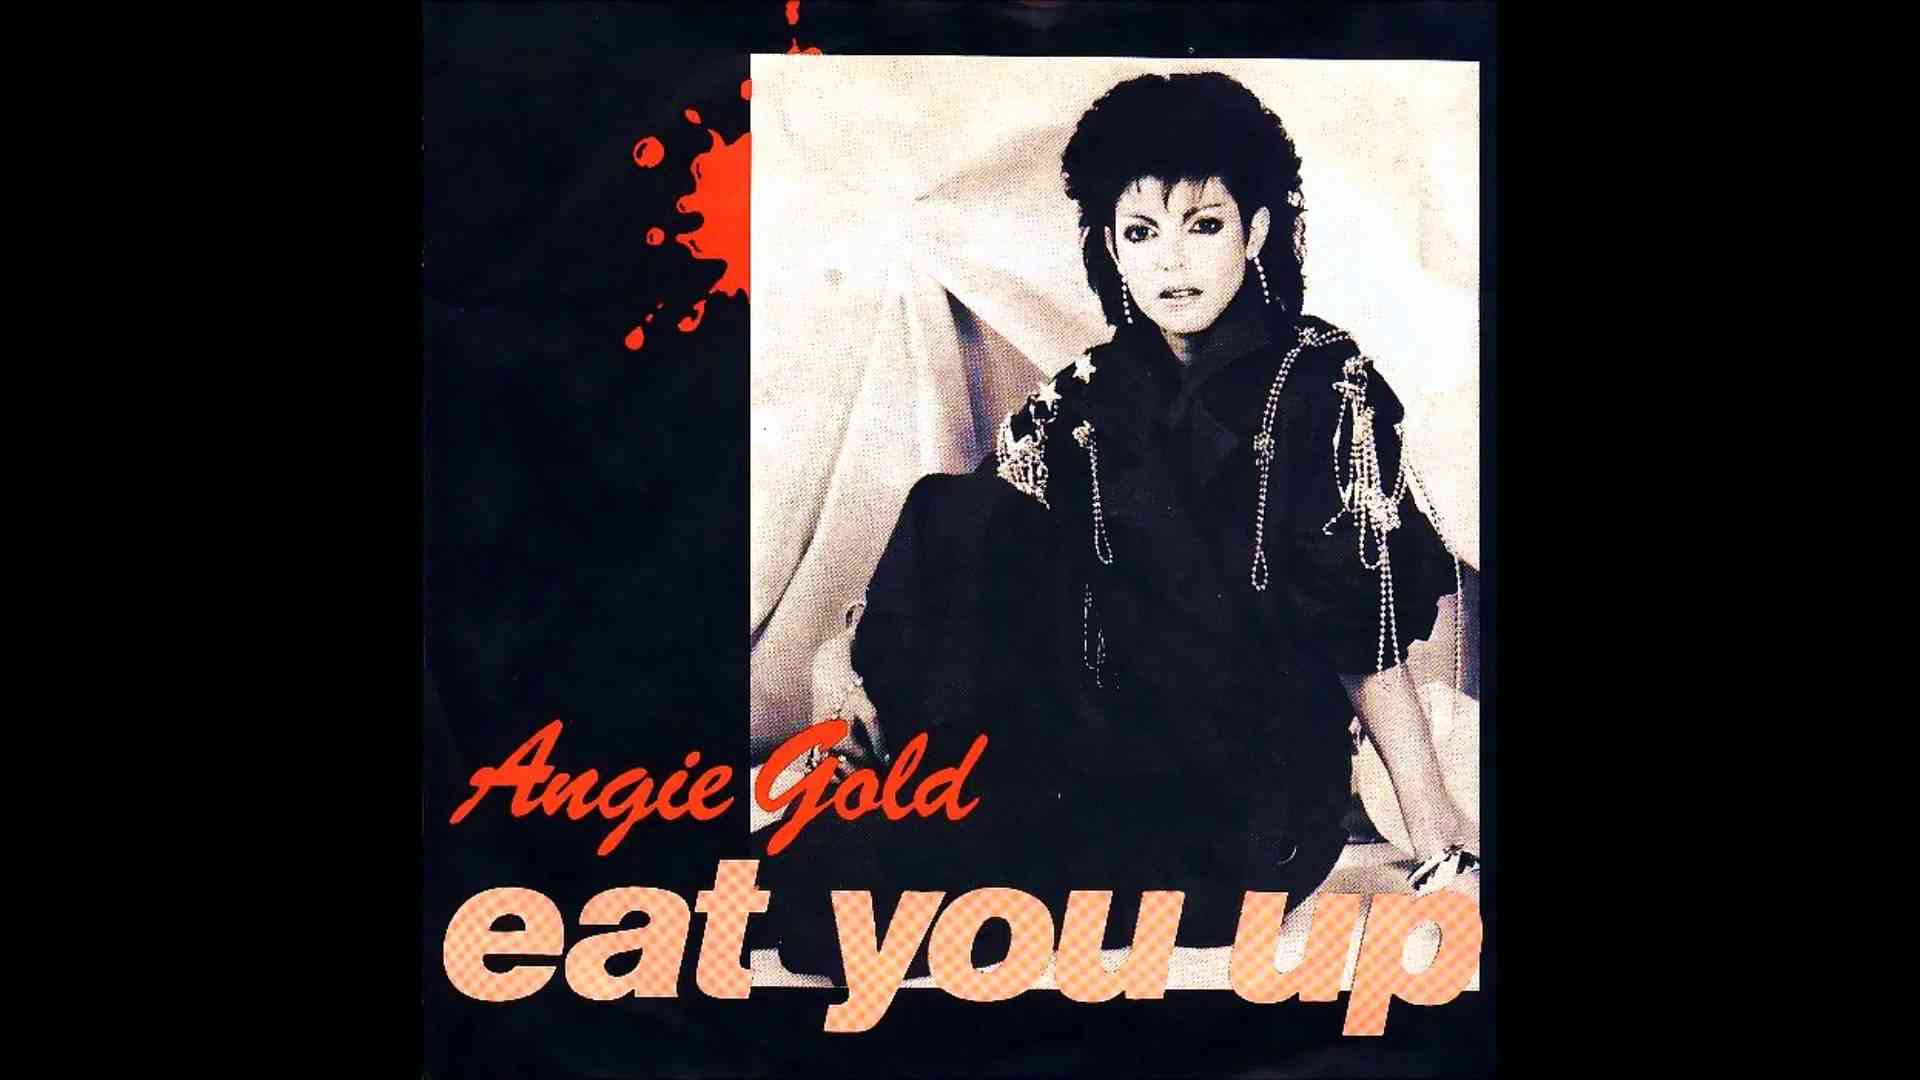 Angie Gold - Eat You Up [HQ] - YouTube